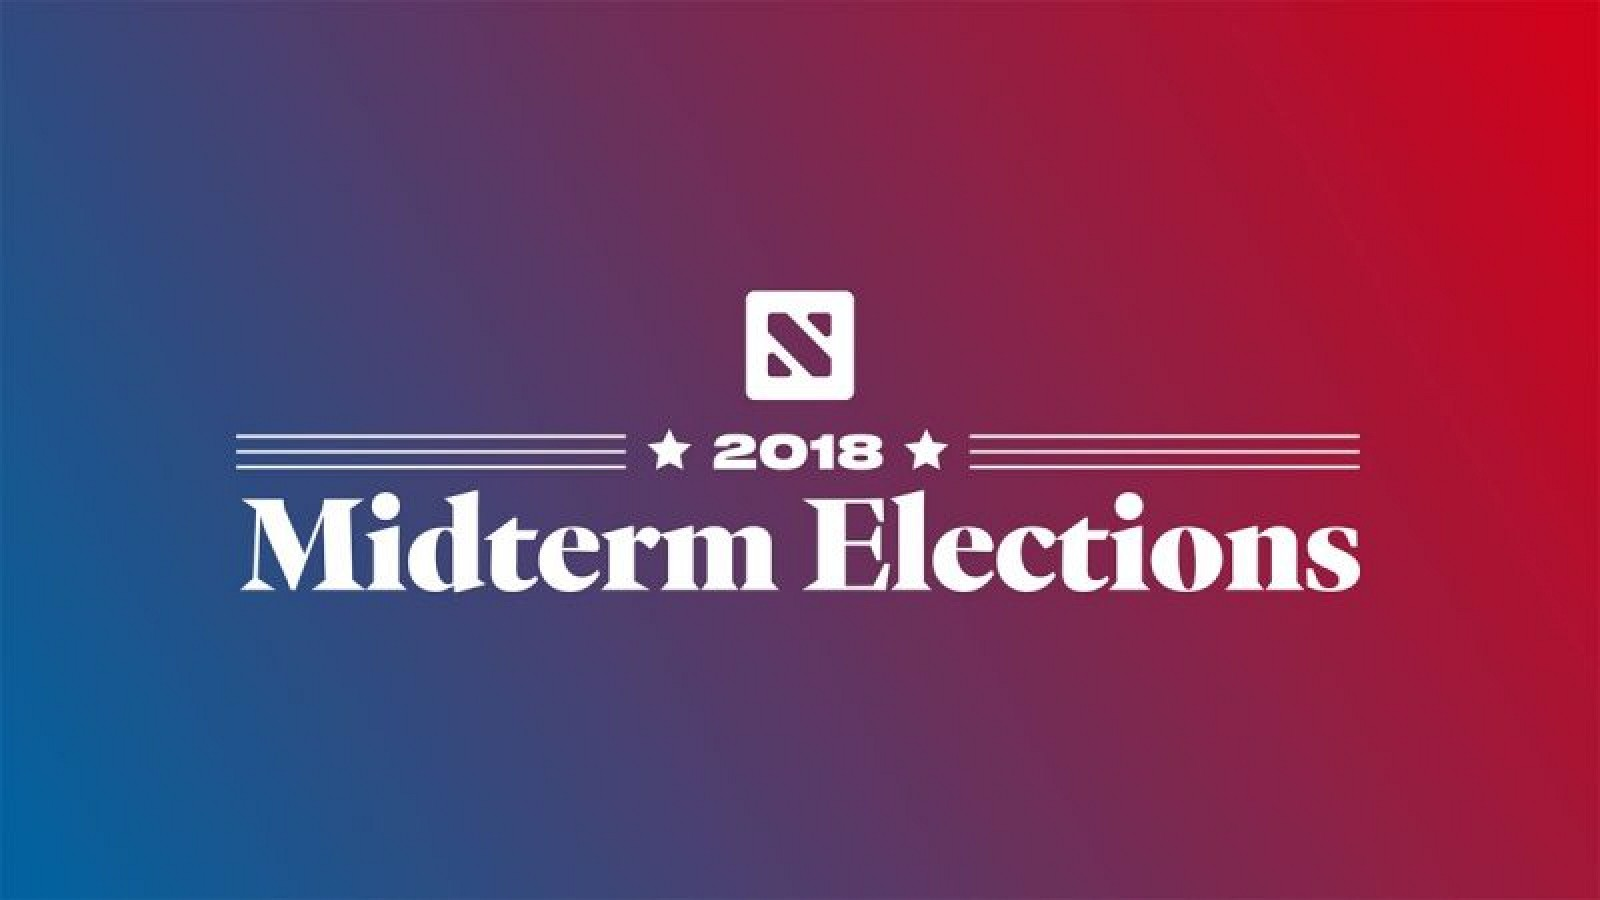 Apple News App Gains '2018 Midterm Elections' Section in the U.S.